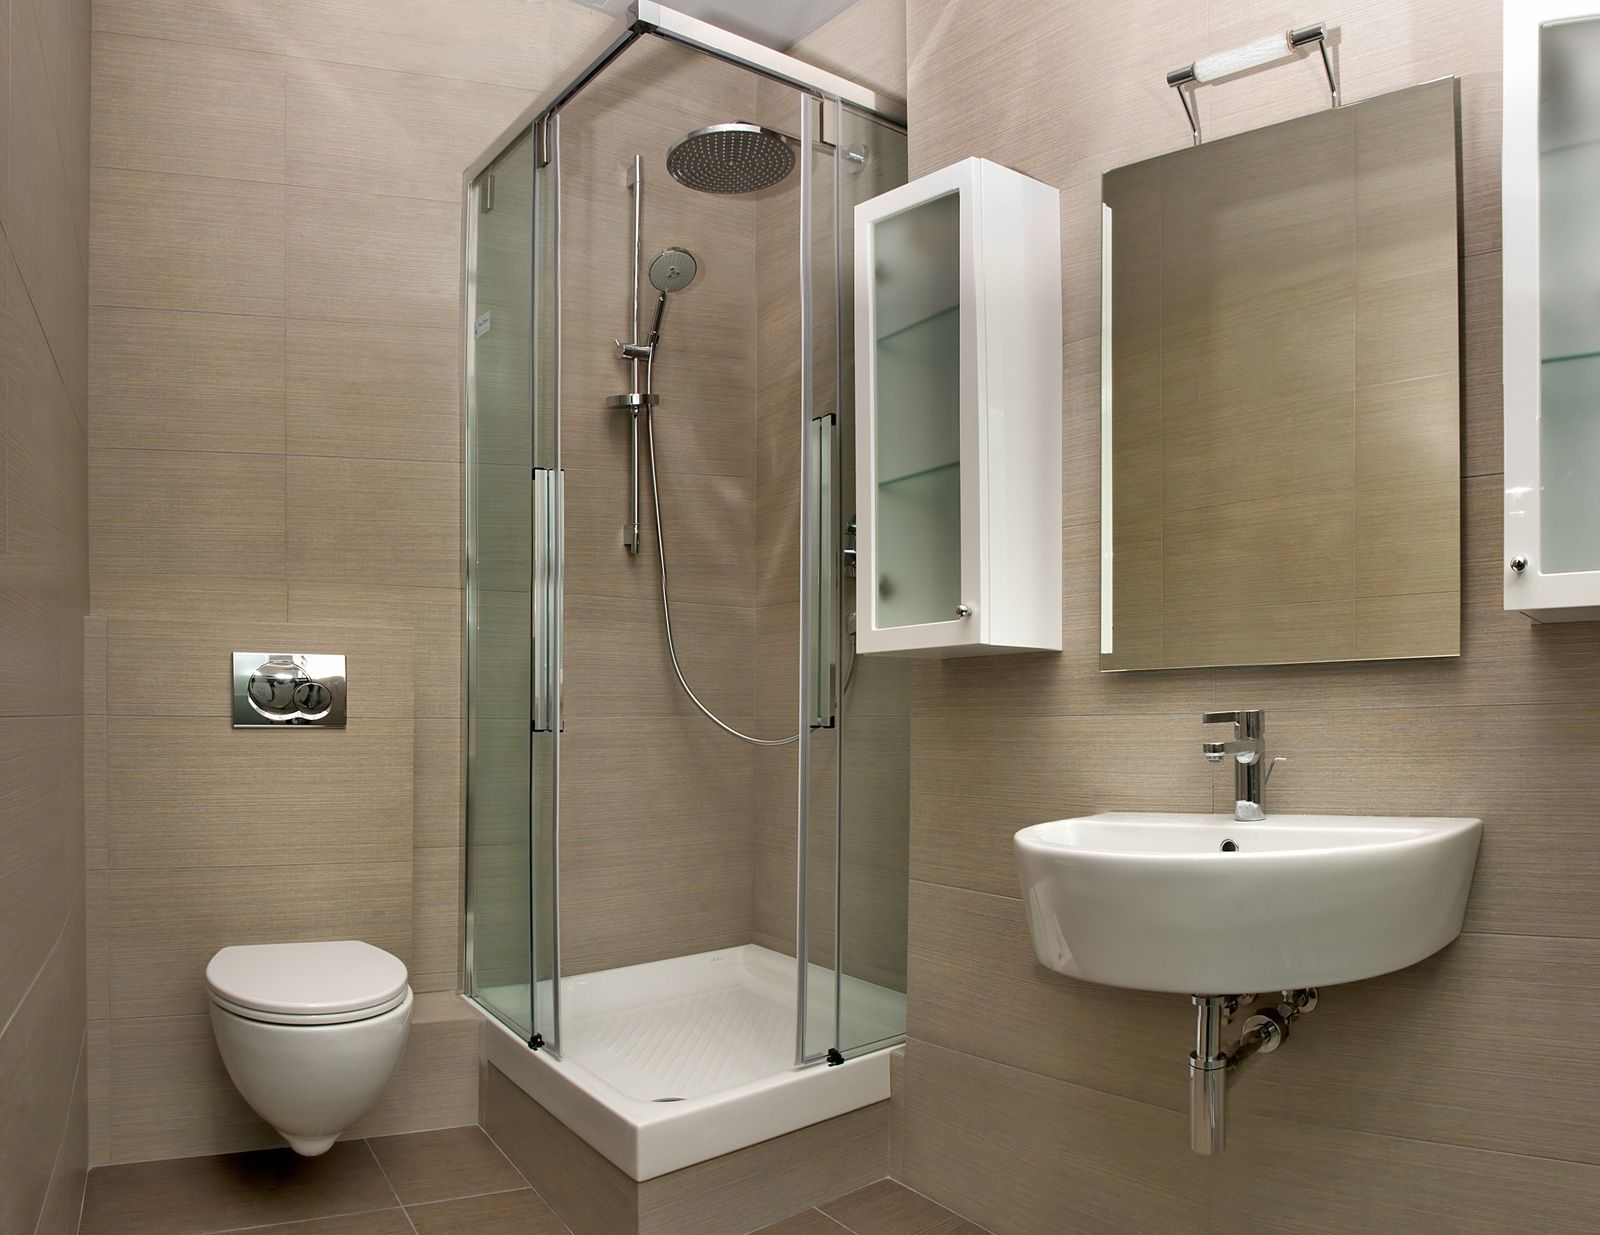 shower enclosures for small bathrooms - Google Search | Bathroom ...